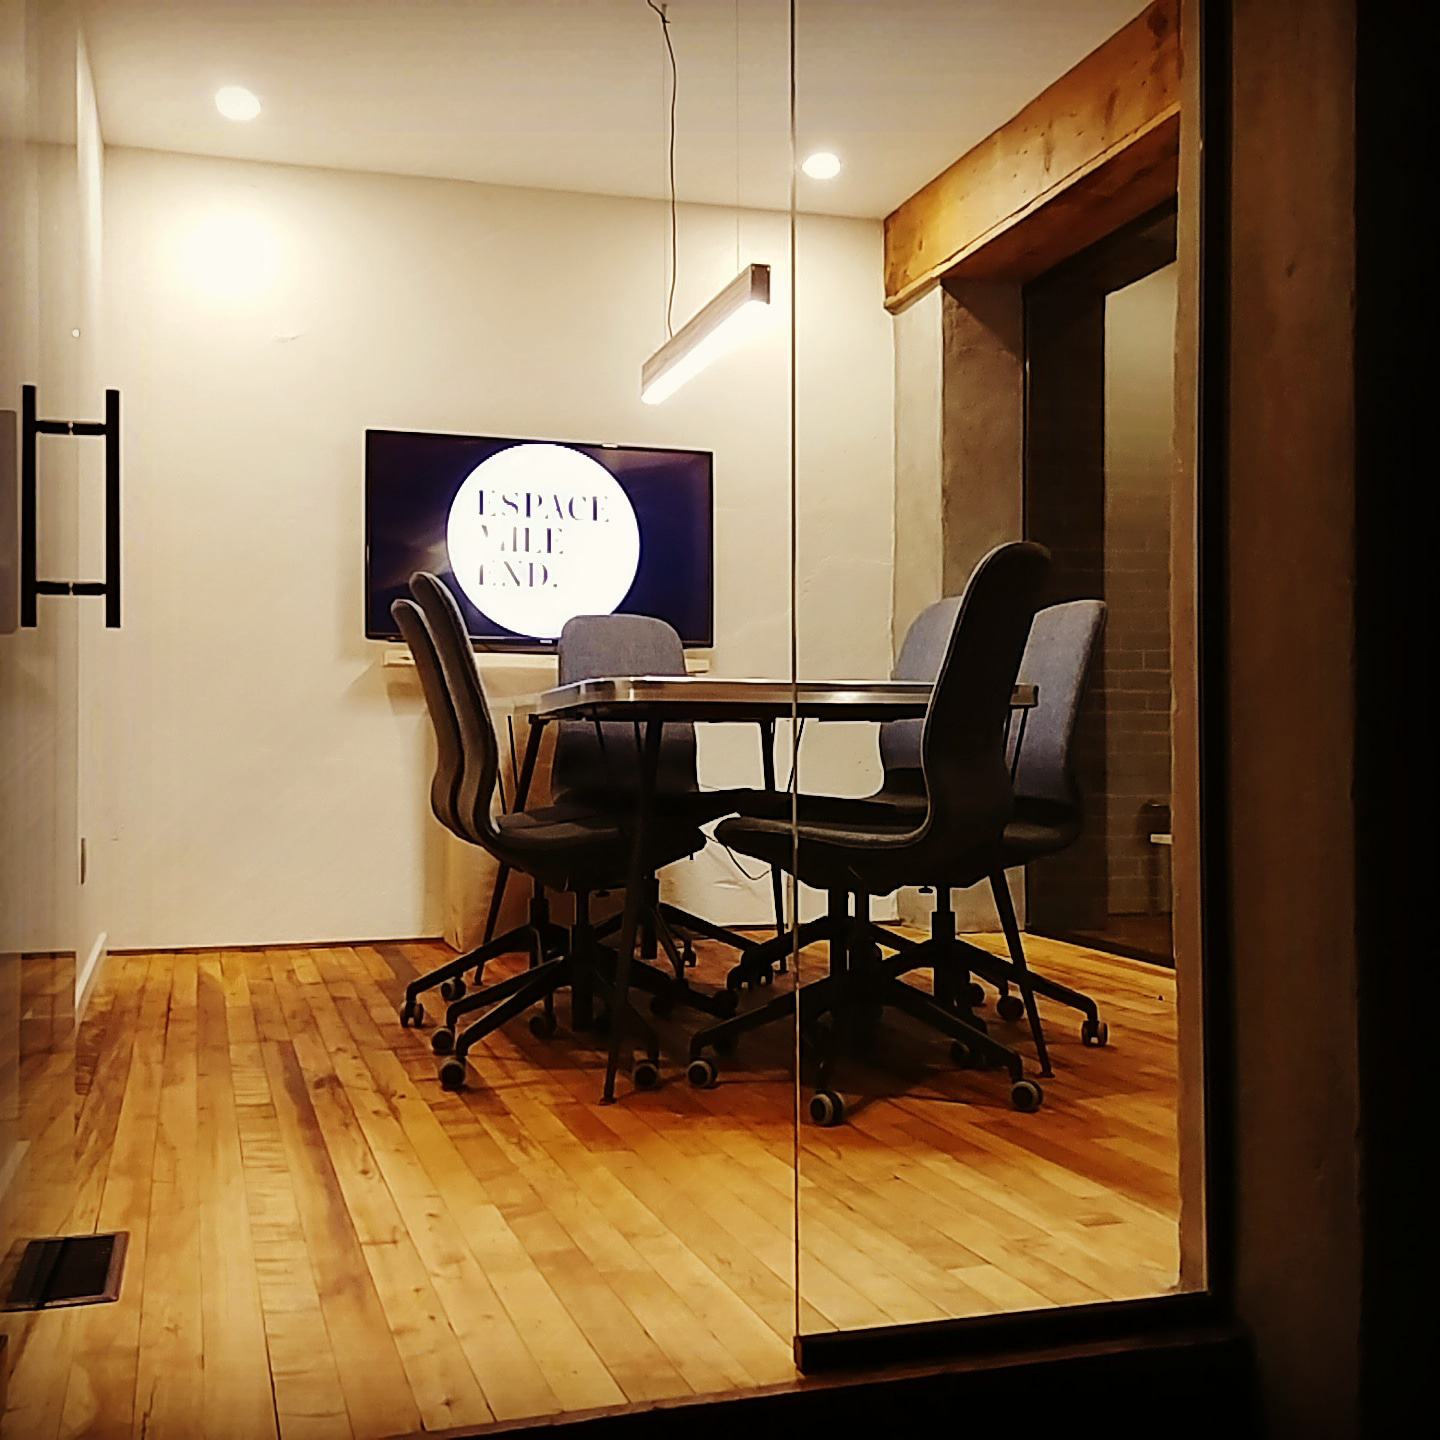 - ONLY FOR MEMBERS(capacity: 6 people)Ideal space for work meetings, sales negotiations, interviews, sales pitches and private phone calls.Included:49 inch television with HDMI cable, Chromecast,